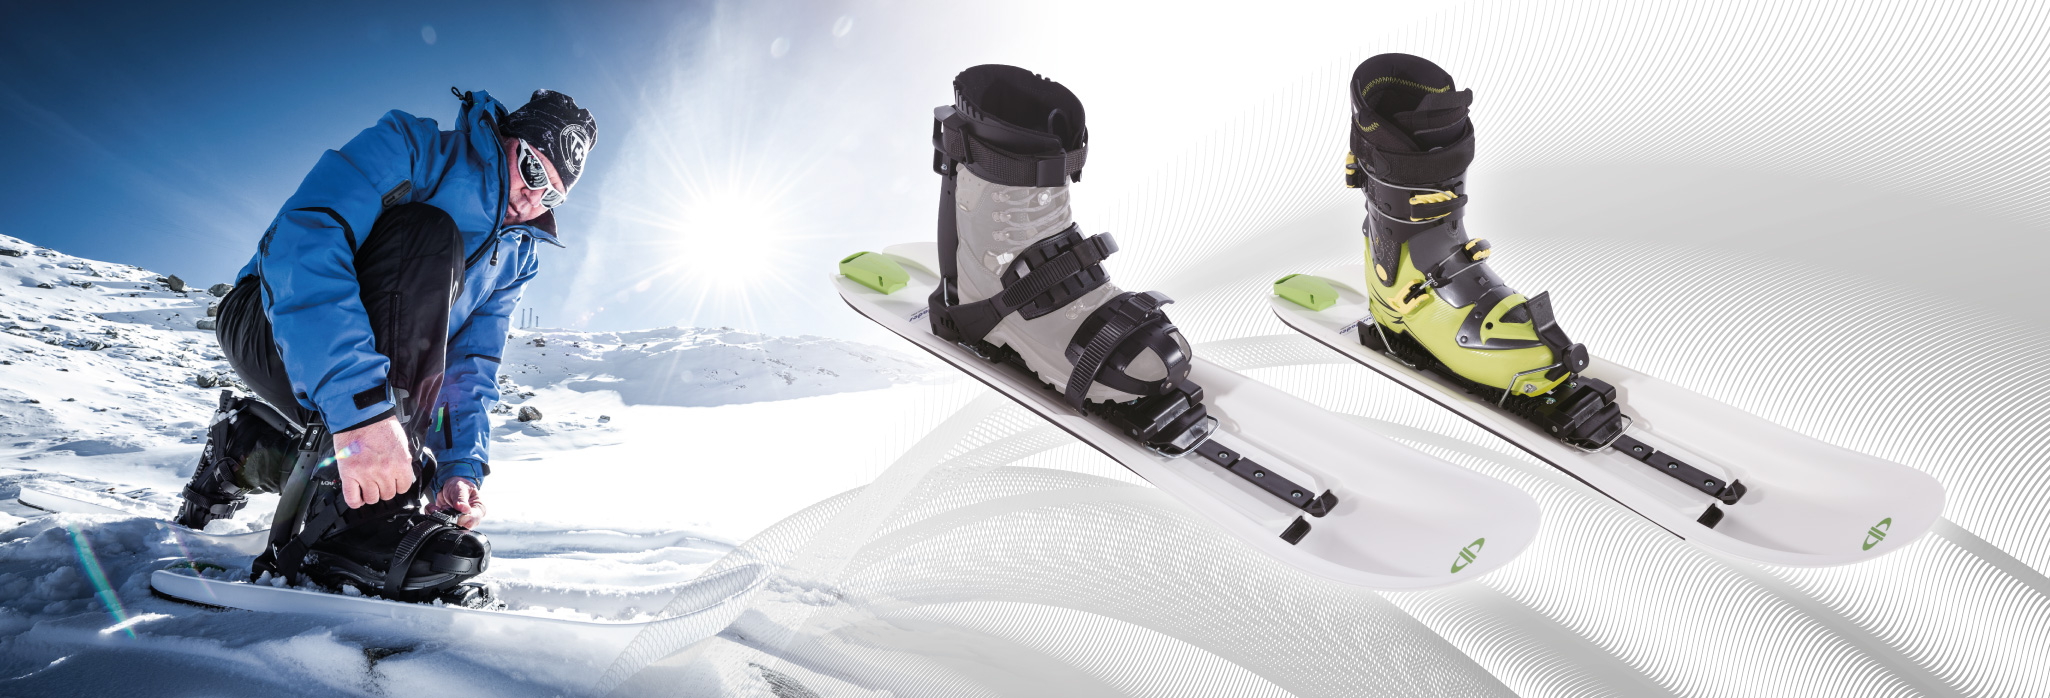 compatible with both a soft boot (snowboard) and hard boot (ski)